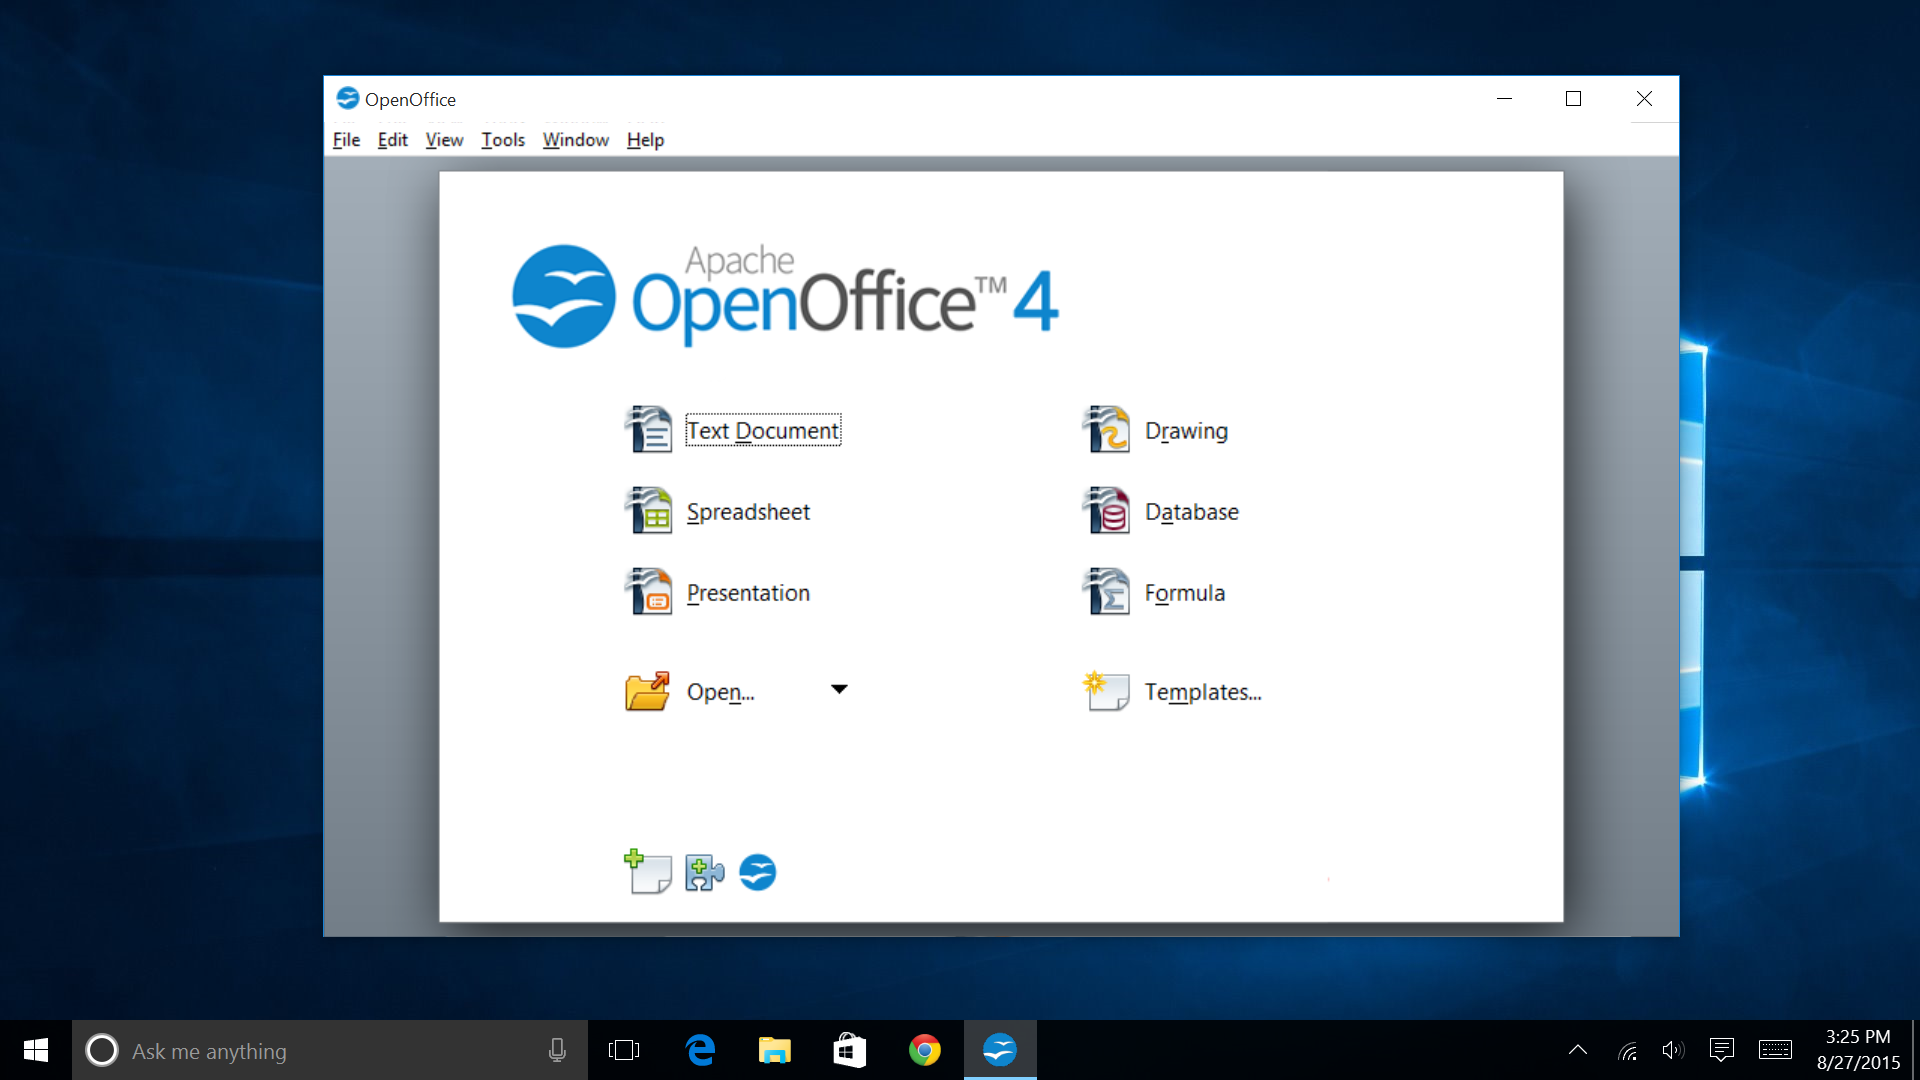 OpenOffice - Free Download for Windows 10 64 bit / 32 bit